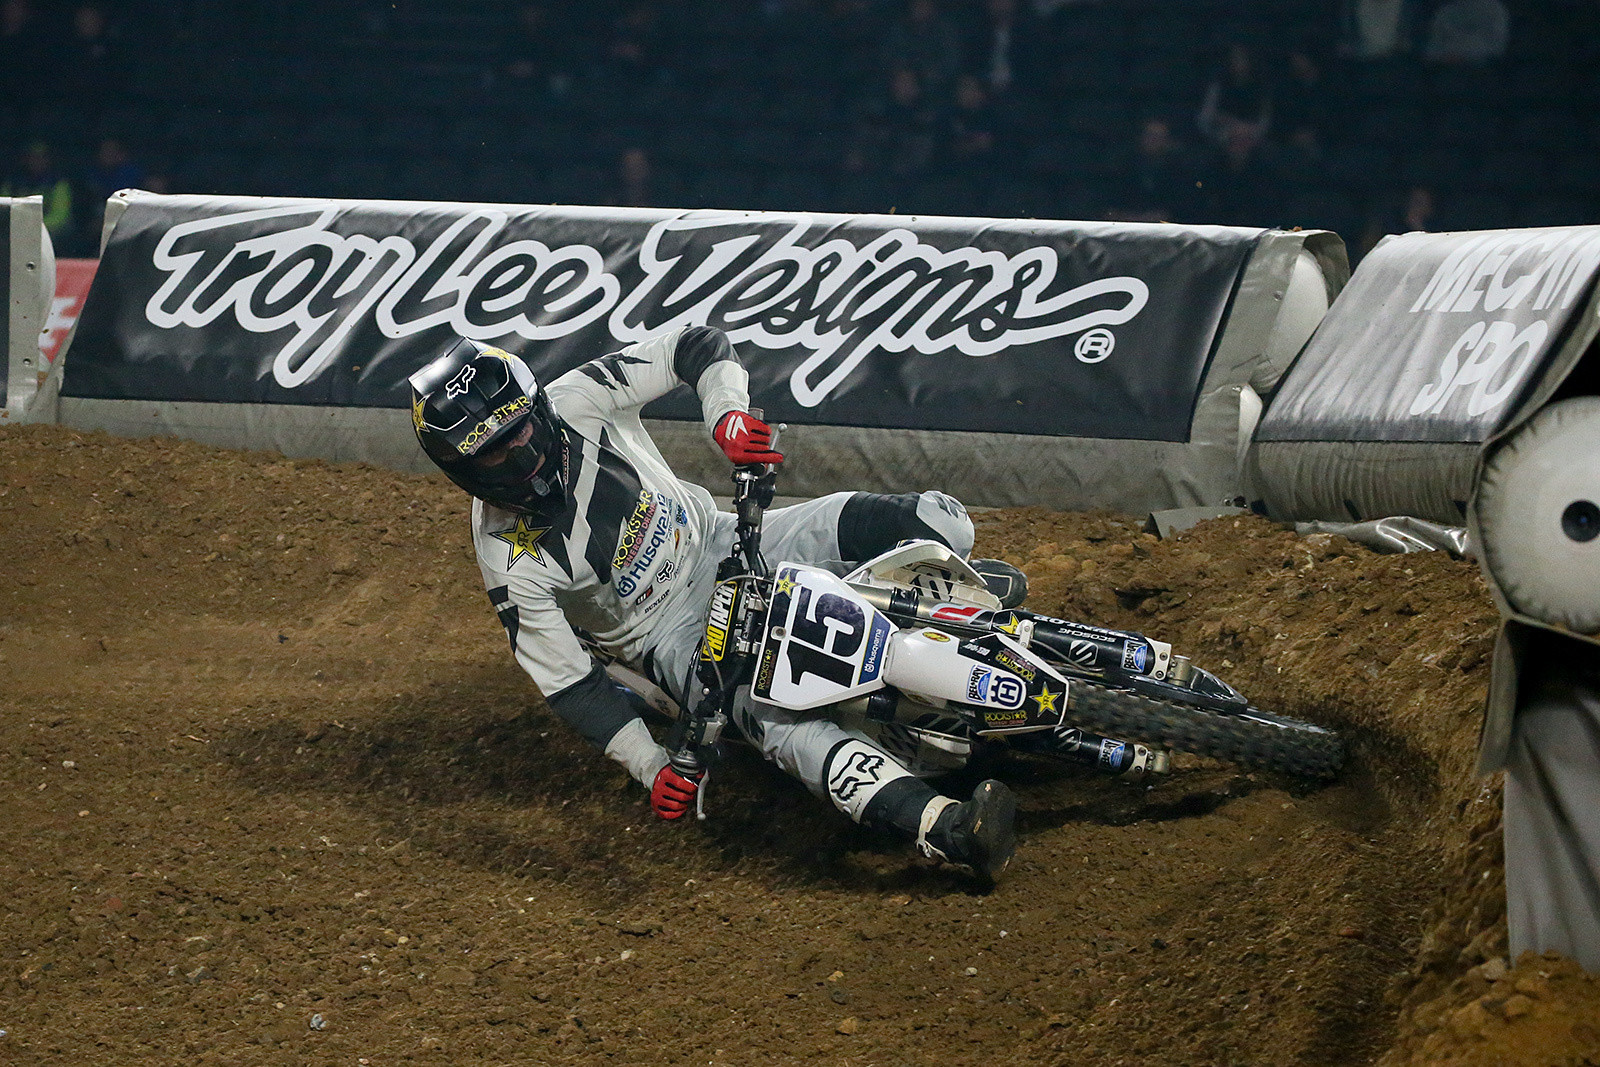 A couple of the berms at the U Arena were no joke. Check out the lean angle on Dean Wilson here.